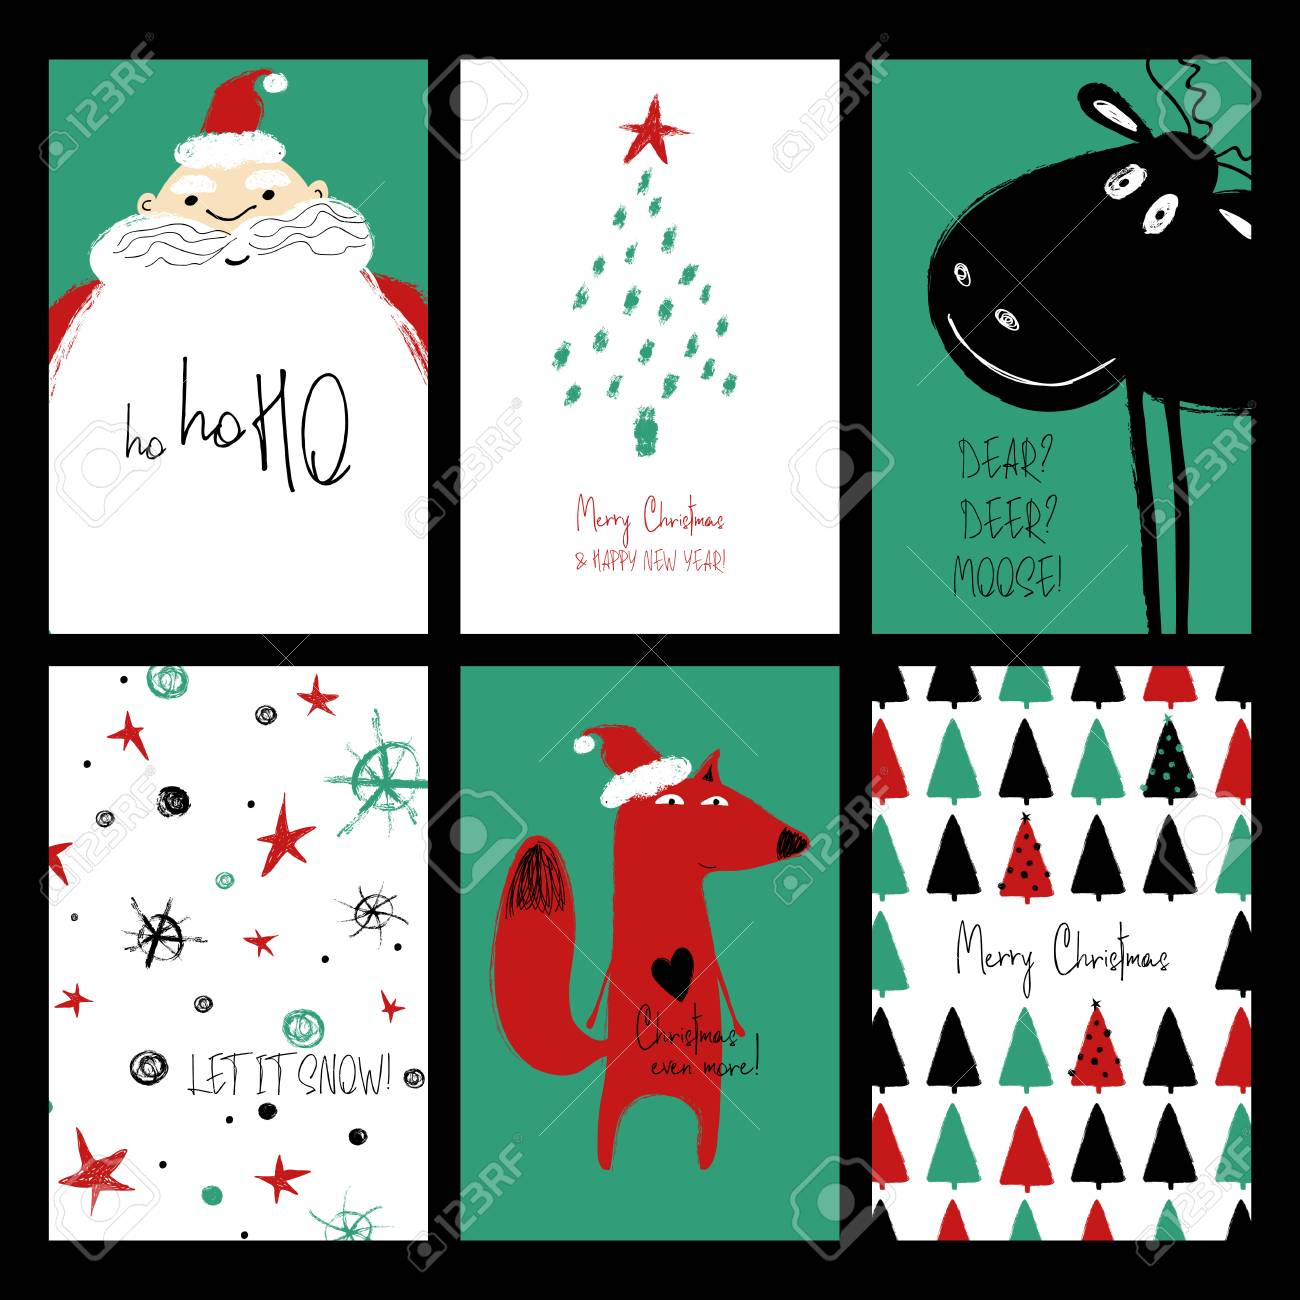 Grappige Kerstkaarten E Cards.Set Of Christmas Greeting Cards Funny Hand Drawn Grunge Cards